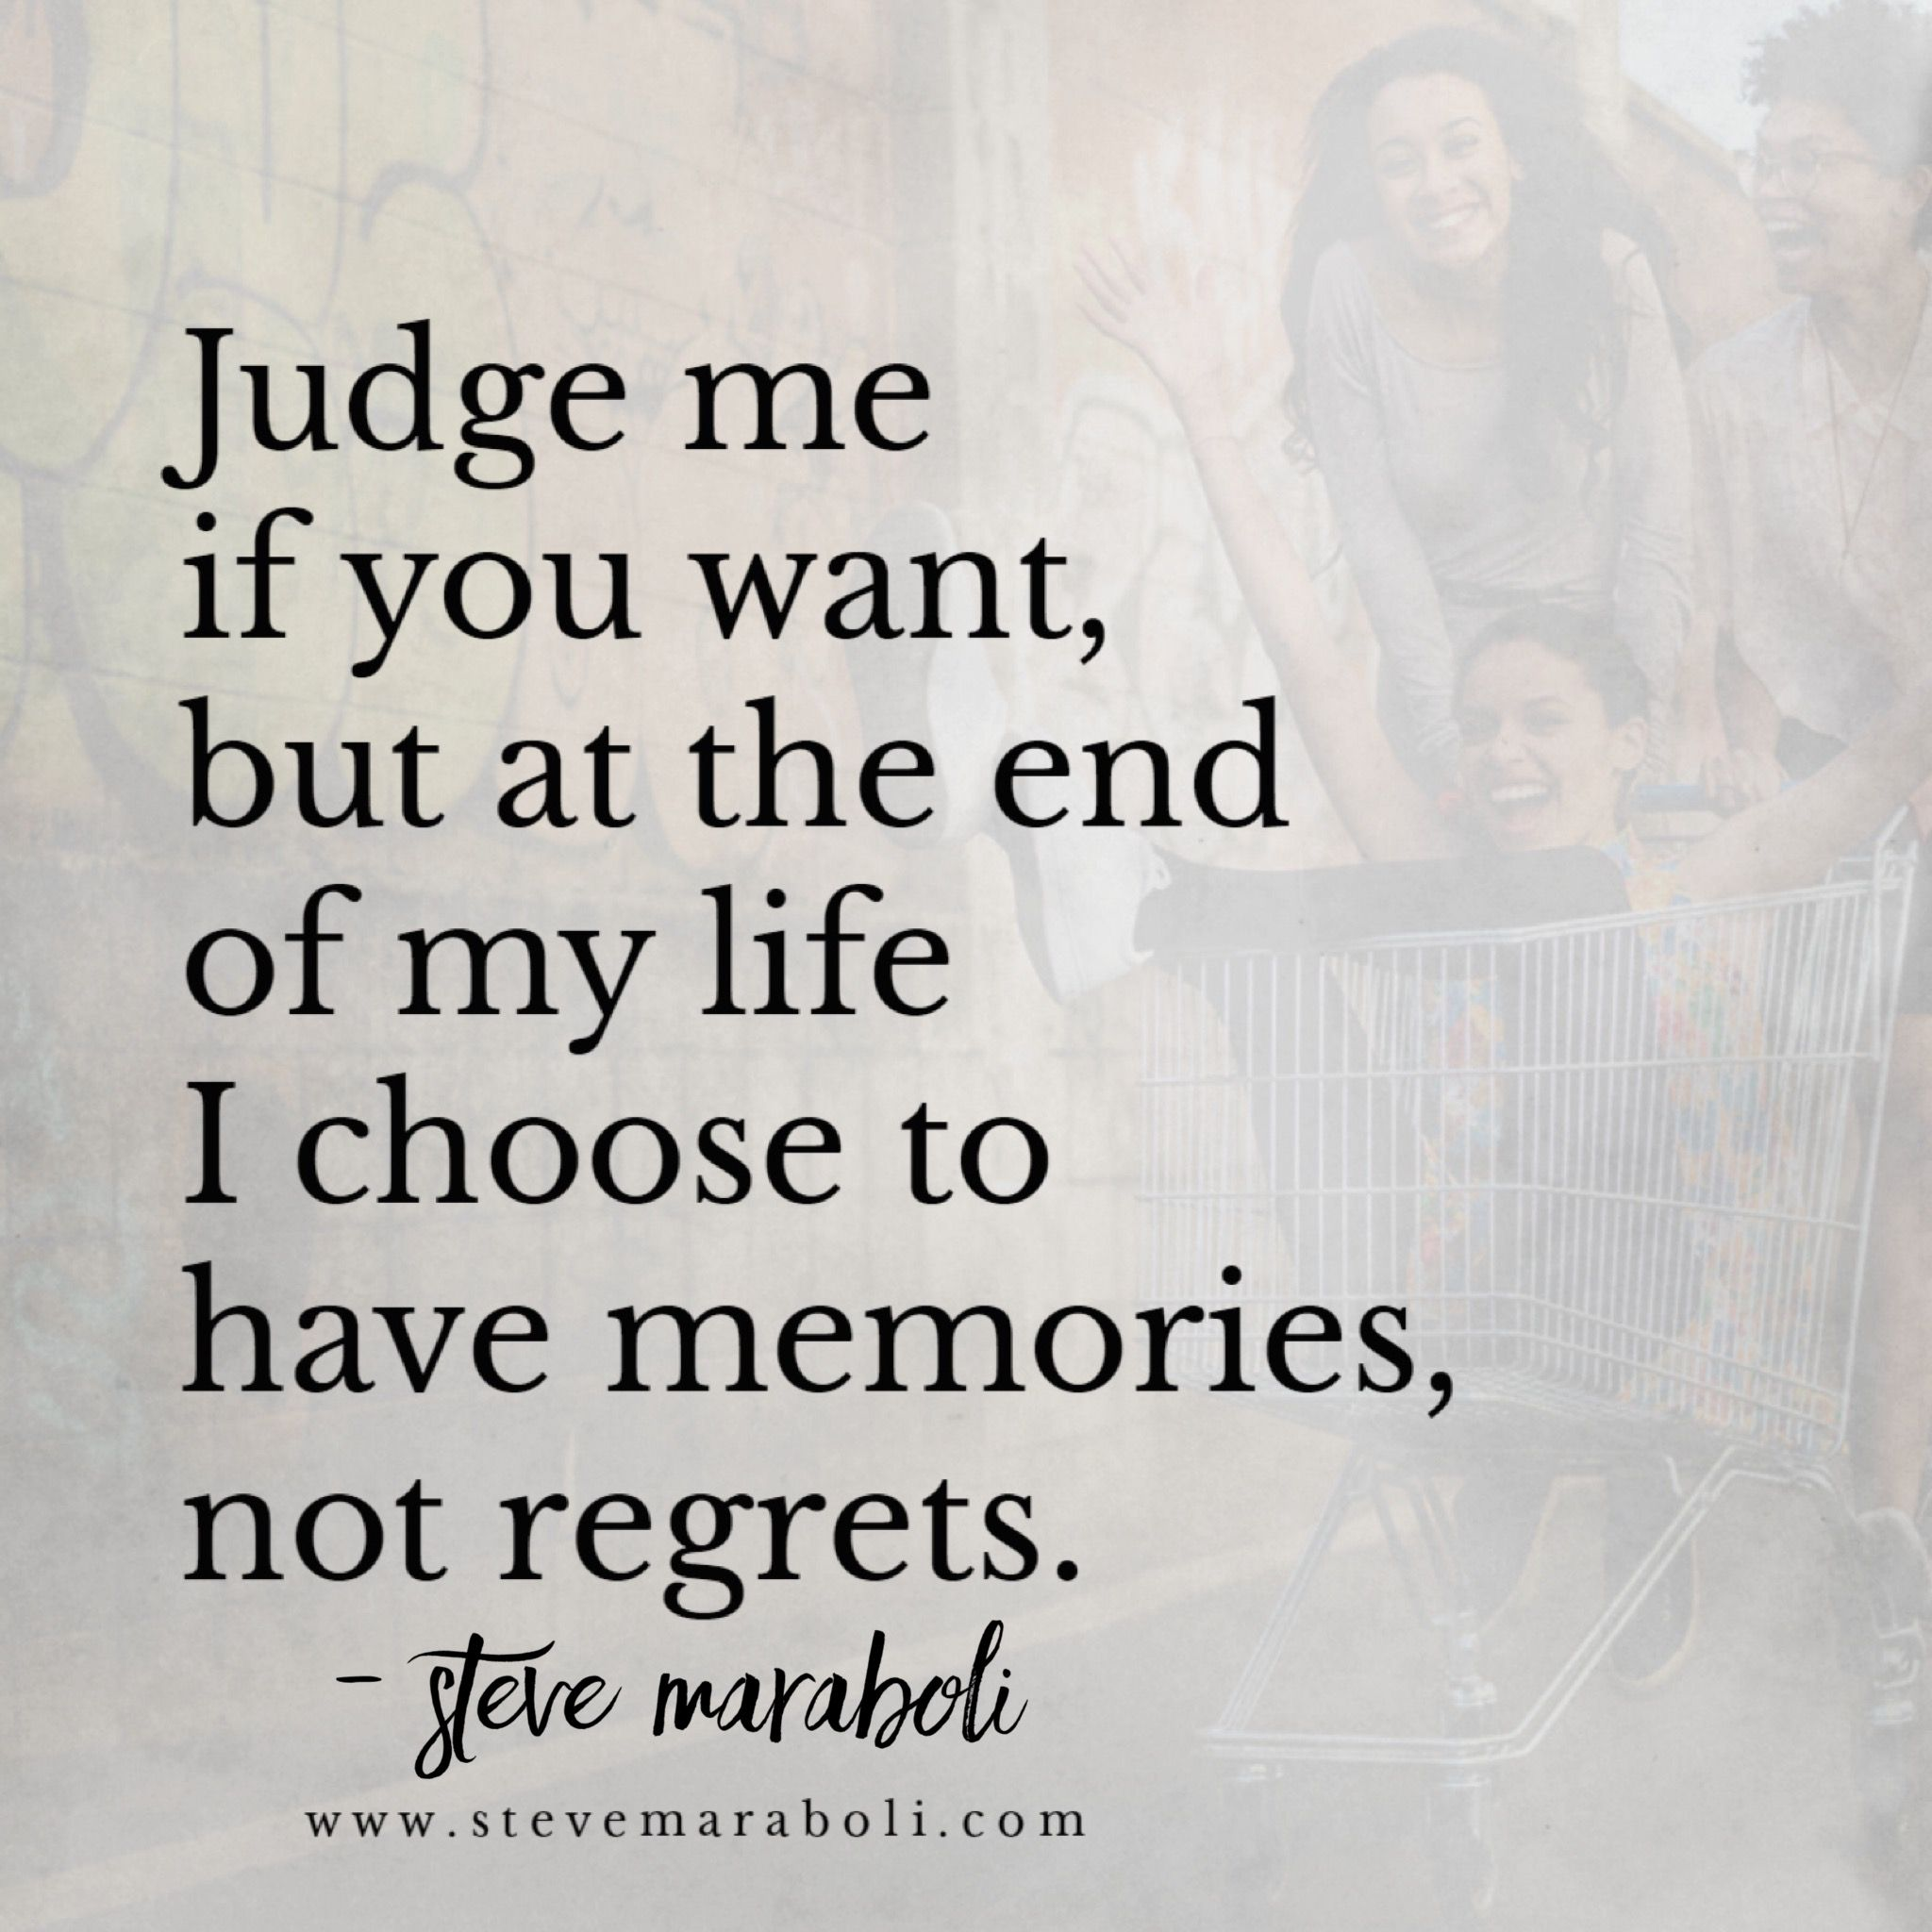 Judge me if you want, but at the end of my life I choose